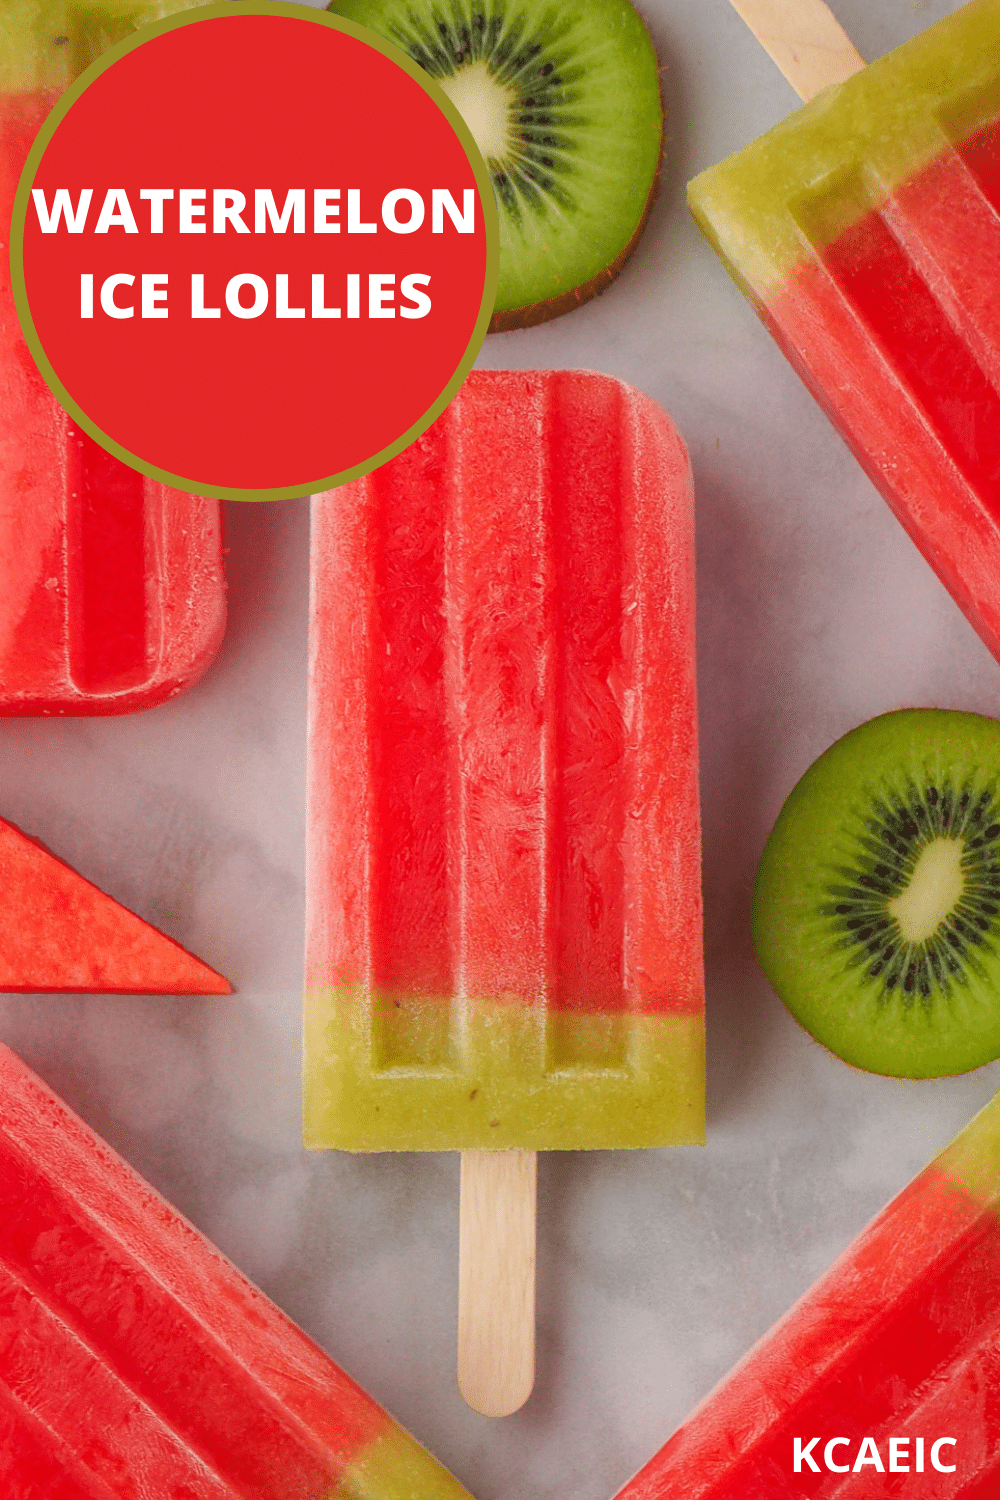 Watermelon ice lollies with fresh watermelon and kiwi fruit and text overlay, watermelon ice lollies, KCAEIC.